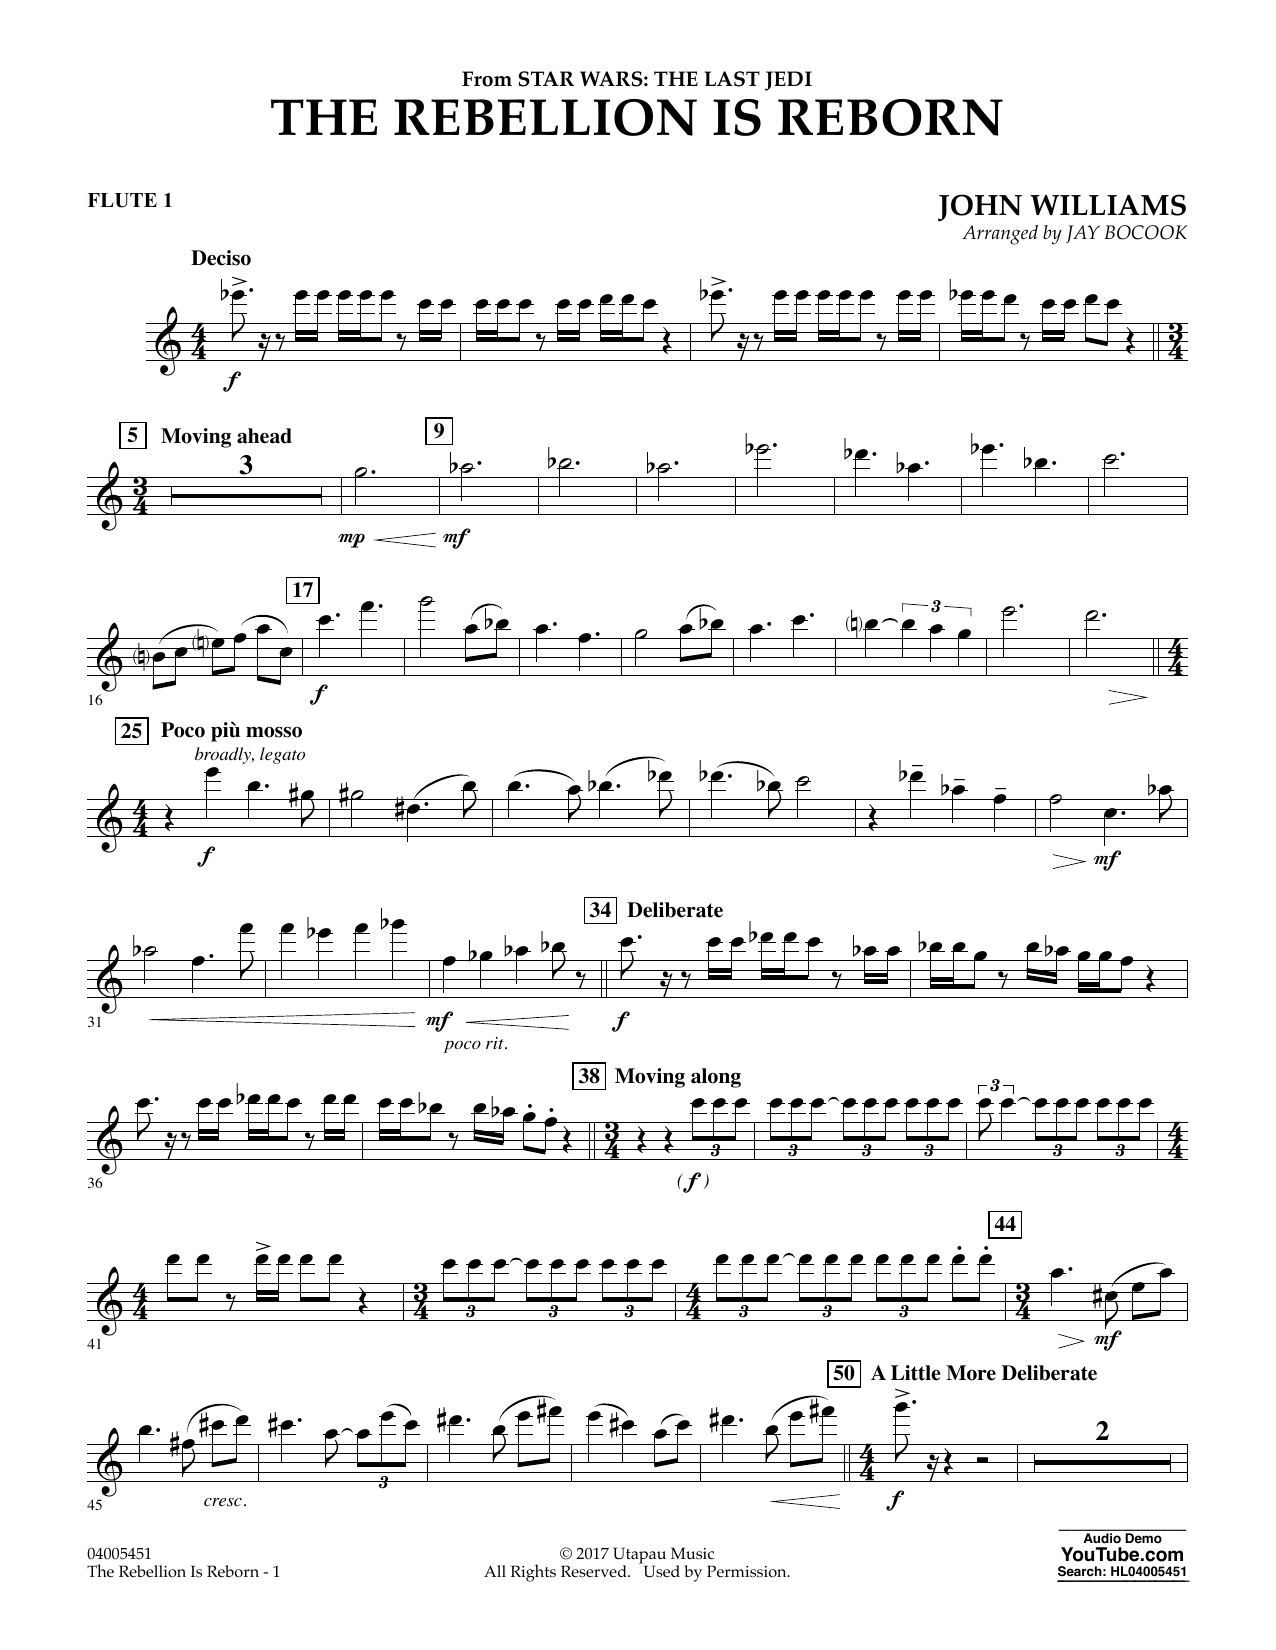 Jay Bocook The Rebellion Is Reborn (from Star Wars: The Last Jedi) - Flute 1 sheet music notes and chords. Download Printable PDF.